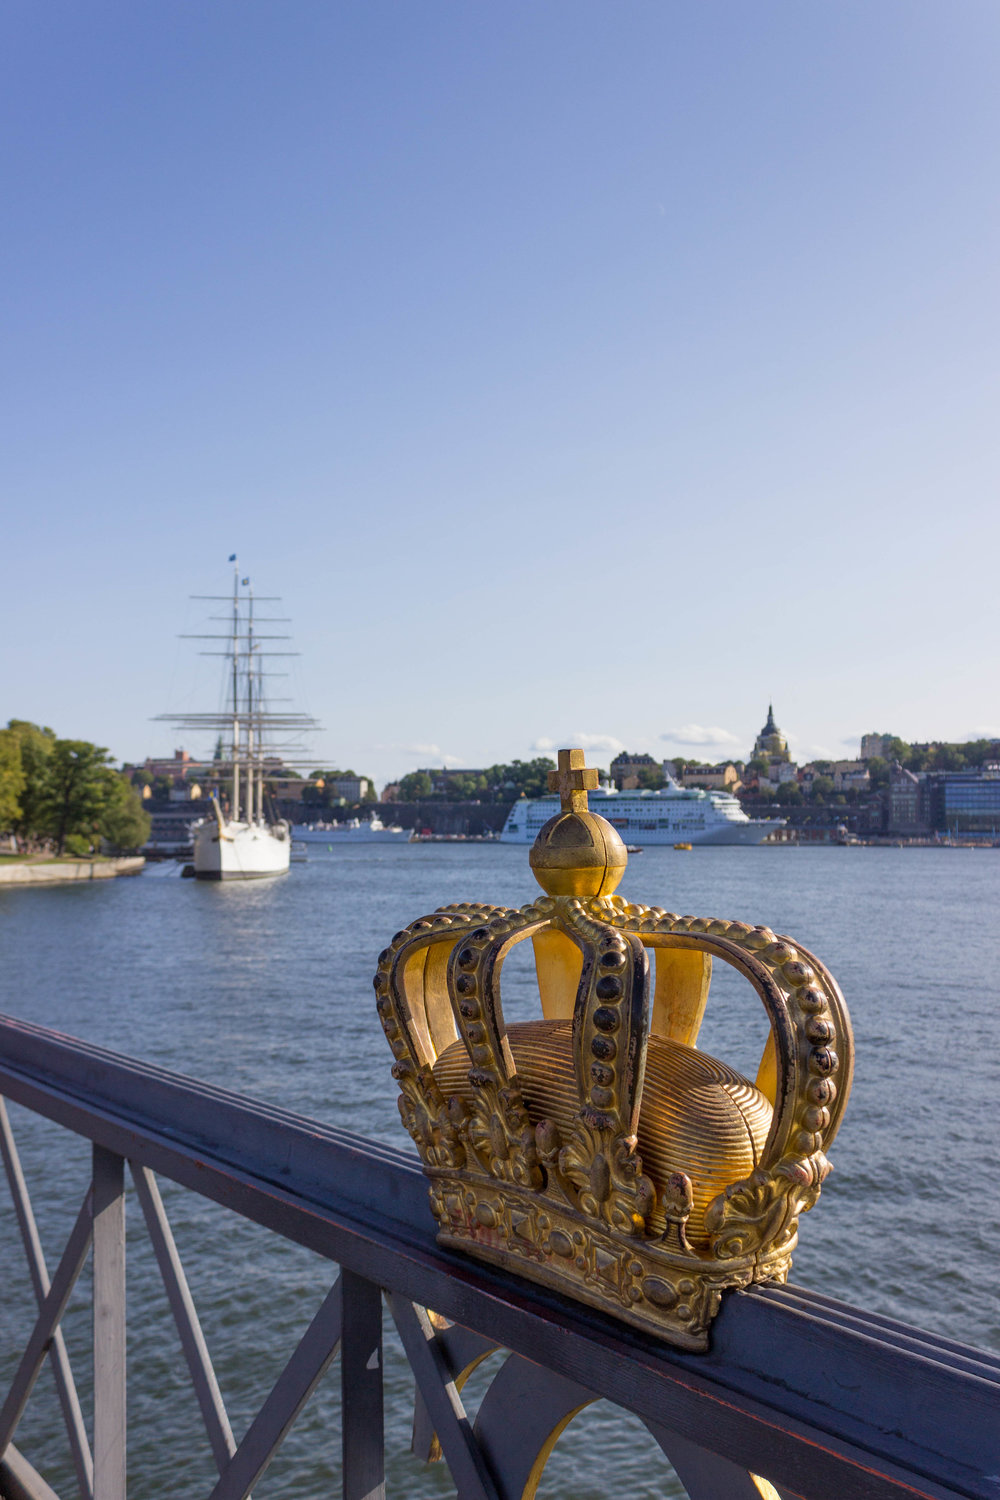 The golden crown in the middle of the bridge to Skeppsholmen